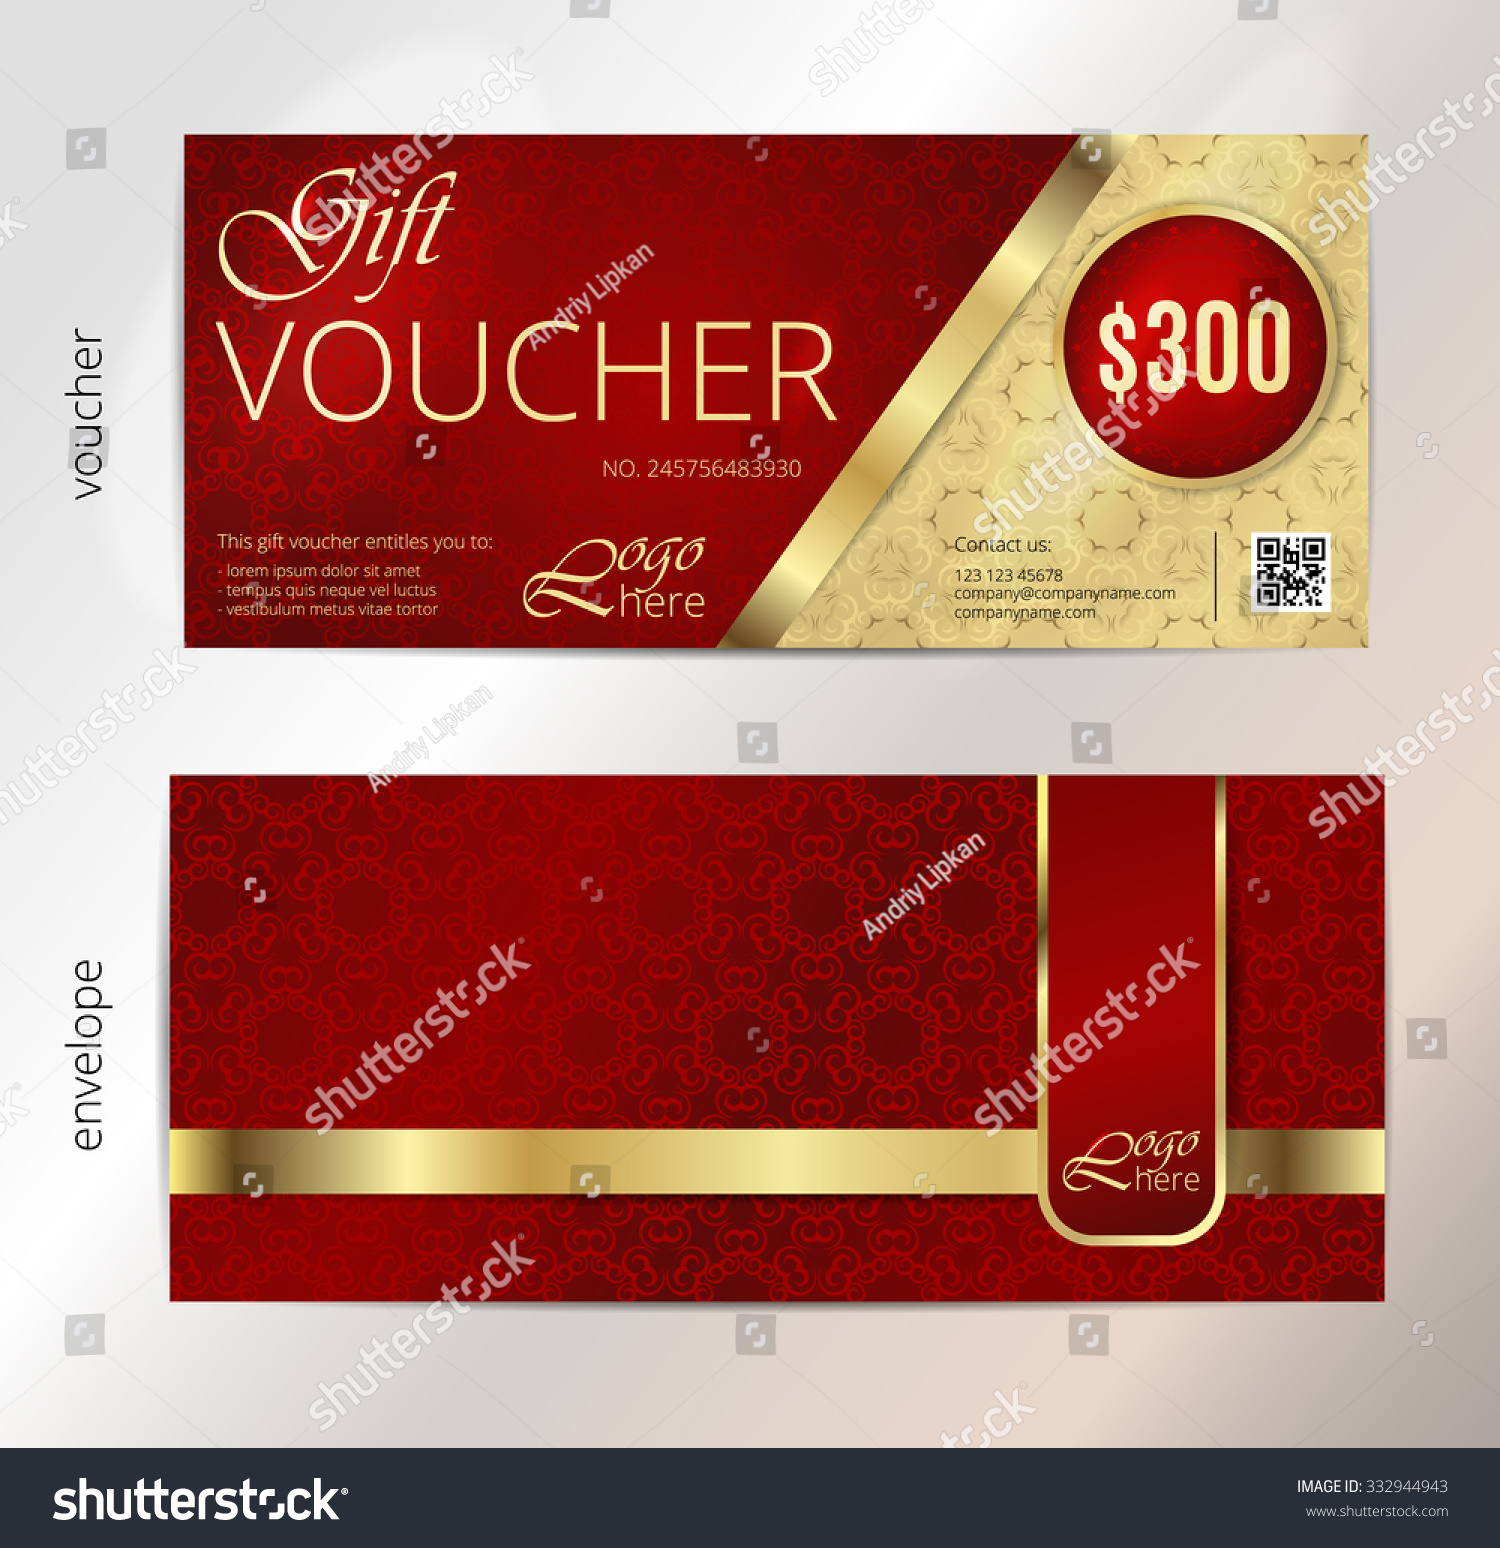 Voucher gift certificate coupon template vintage stock for Cheque voucher template